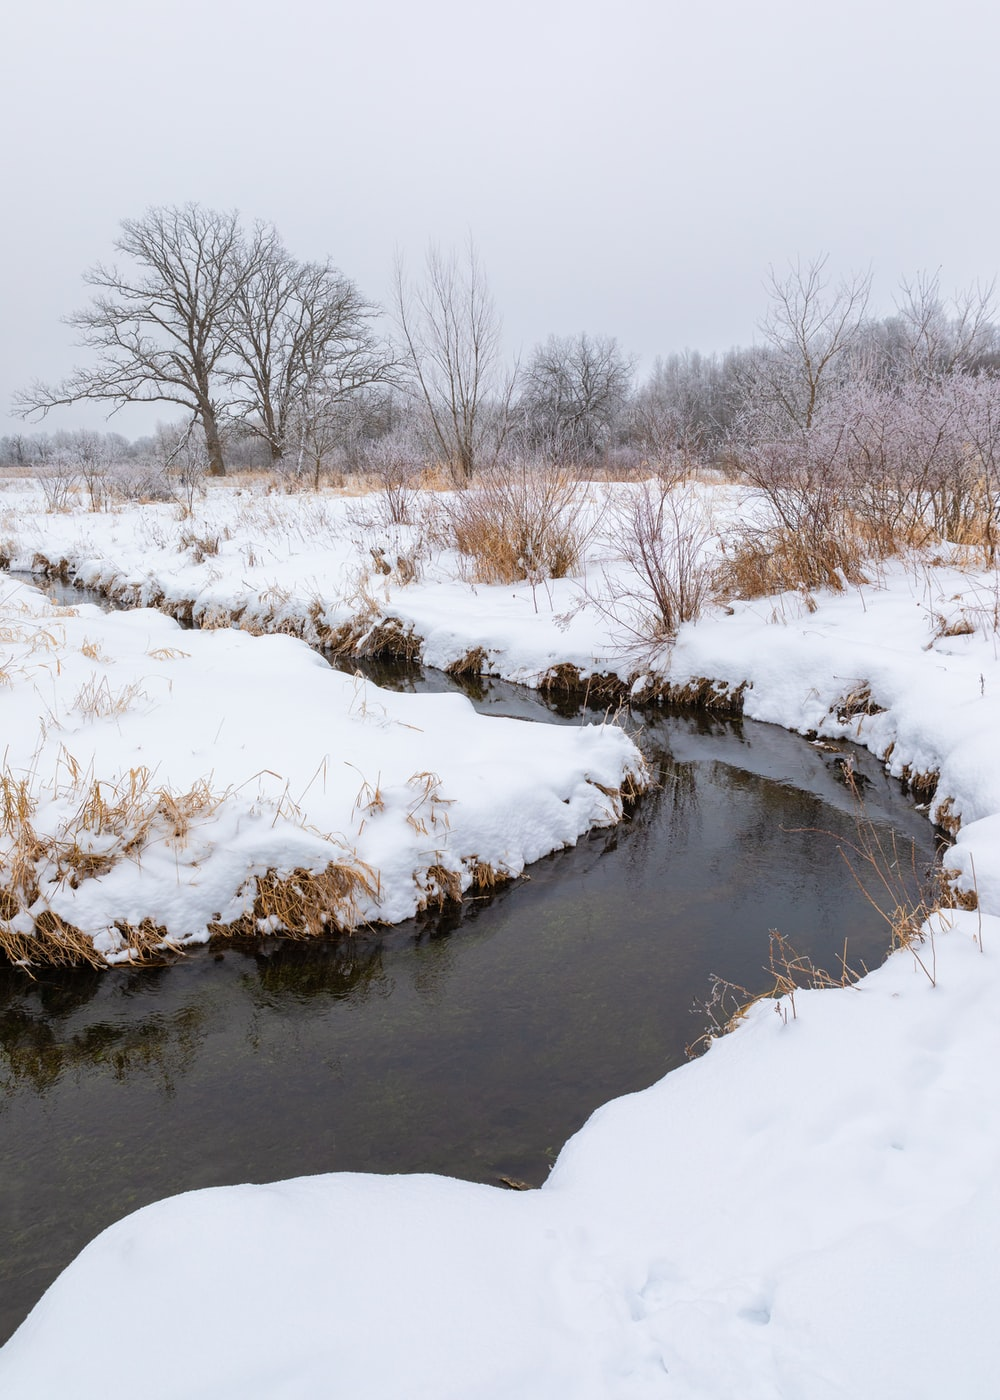 snow covered field and trees beside river during daytime